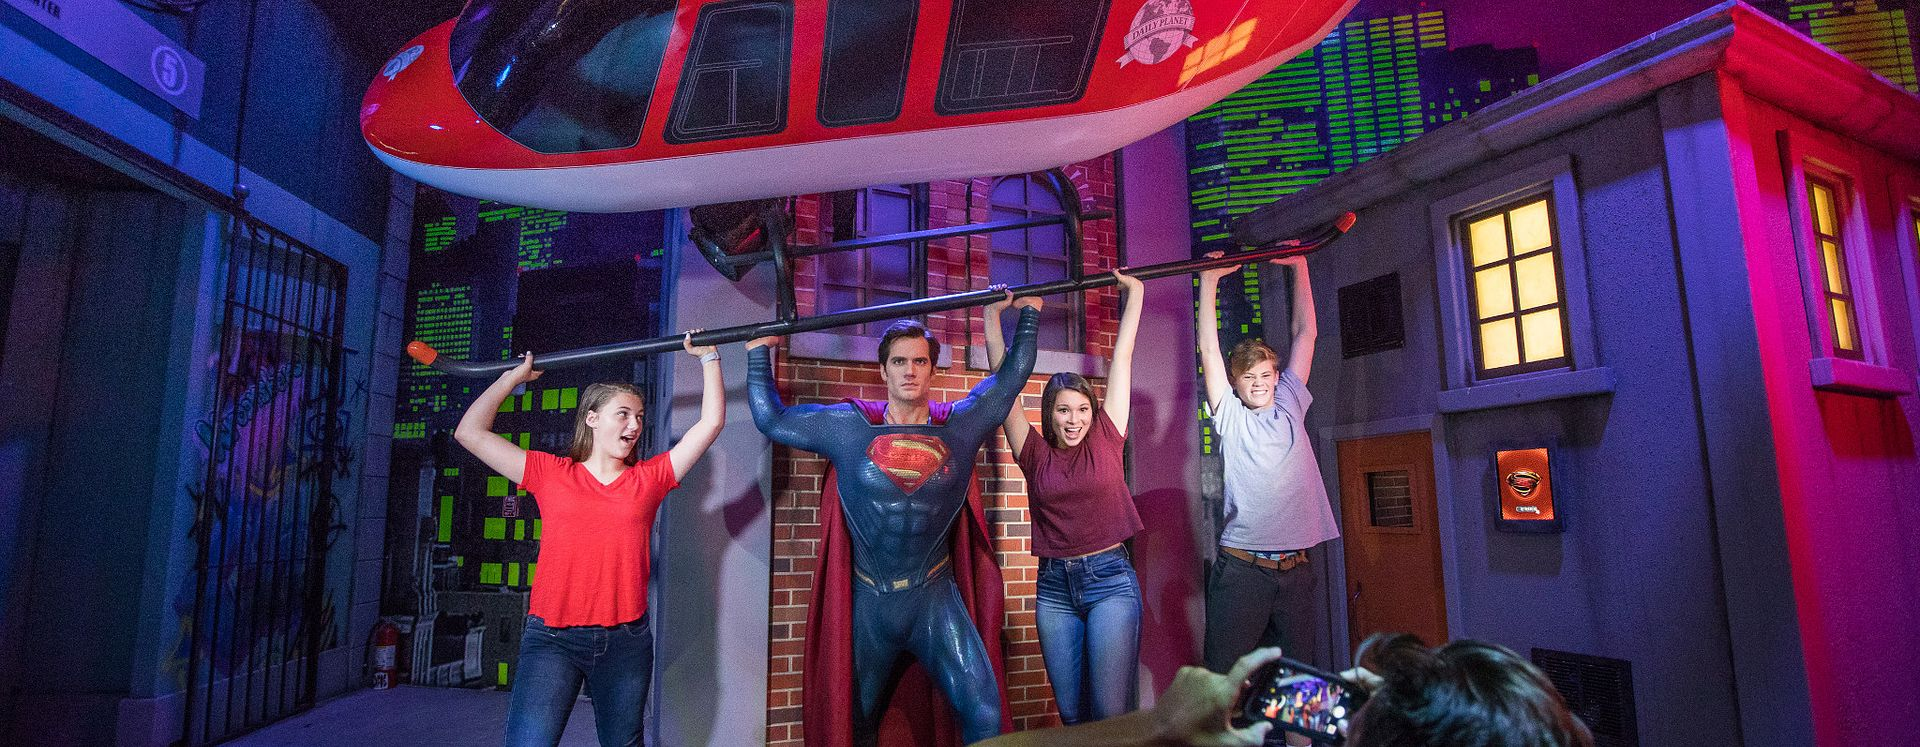 A group of friends posing with Superman holding up a helicopter at Madame Tussauds